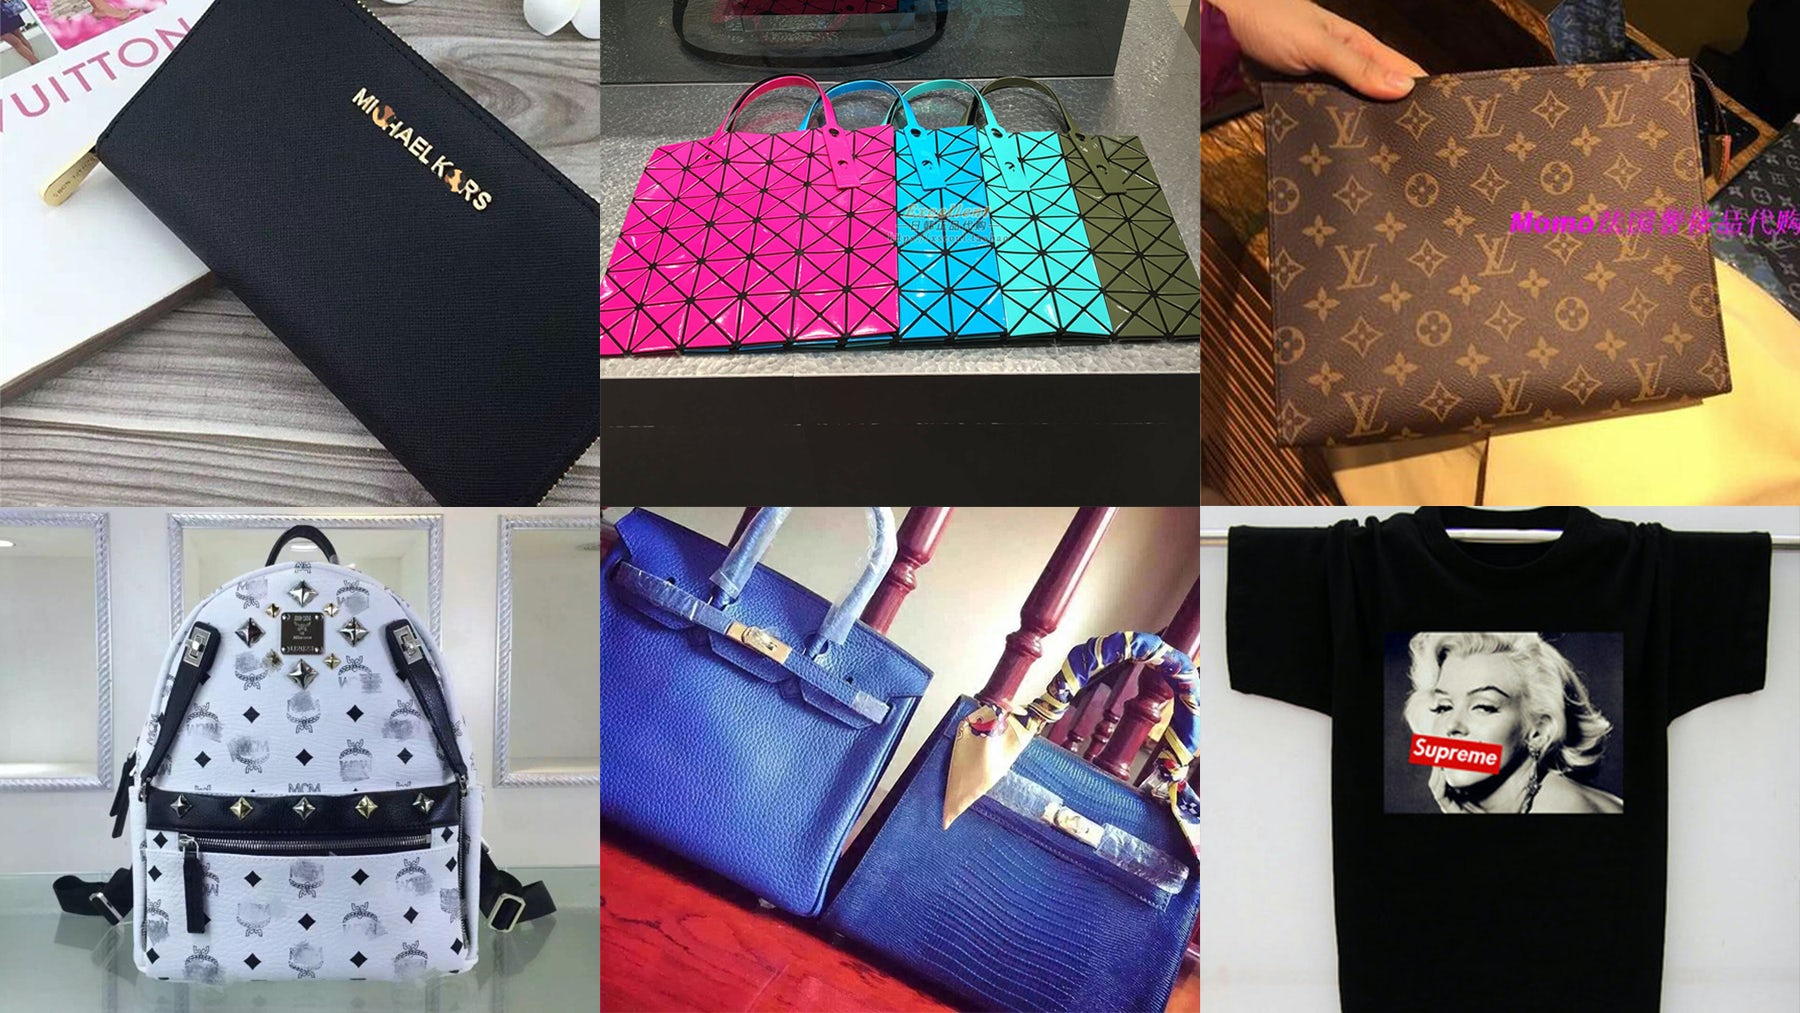 Products sold by daigou on Alibaba's Taobao.com   Source: Taobao